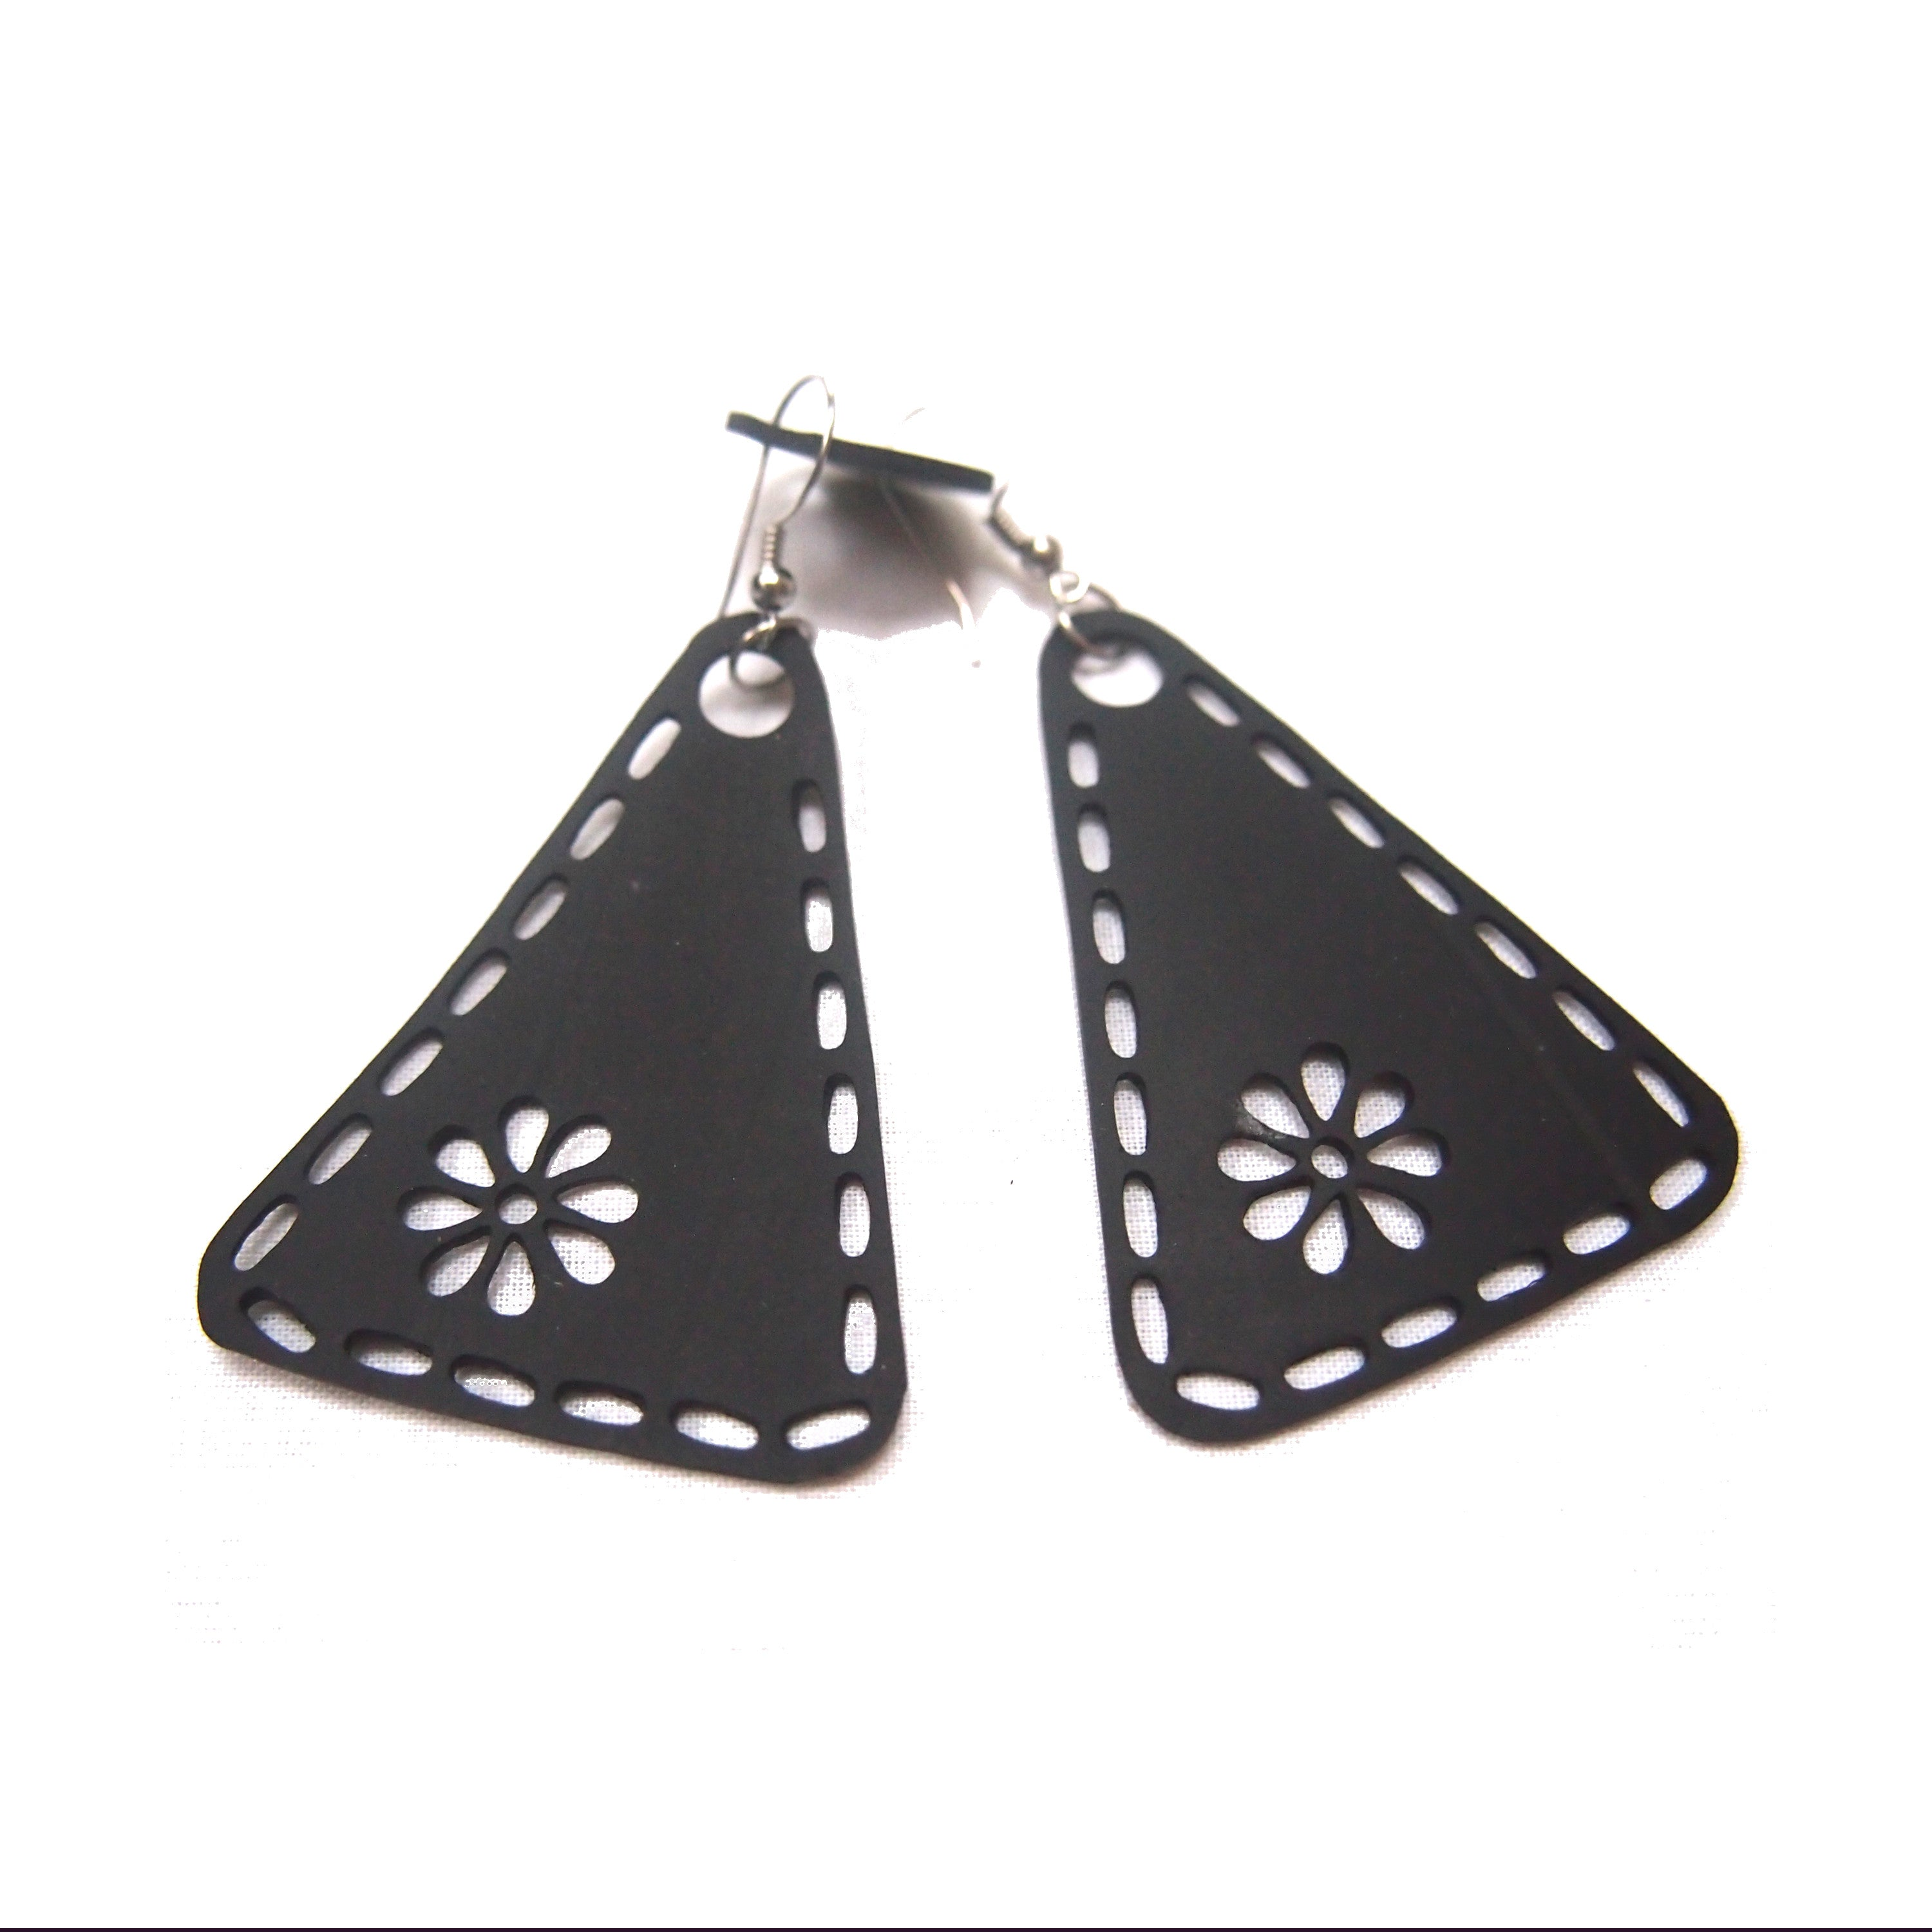 Unique Recycled Rubber Triangle Earrings by Paguro Upcycle